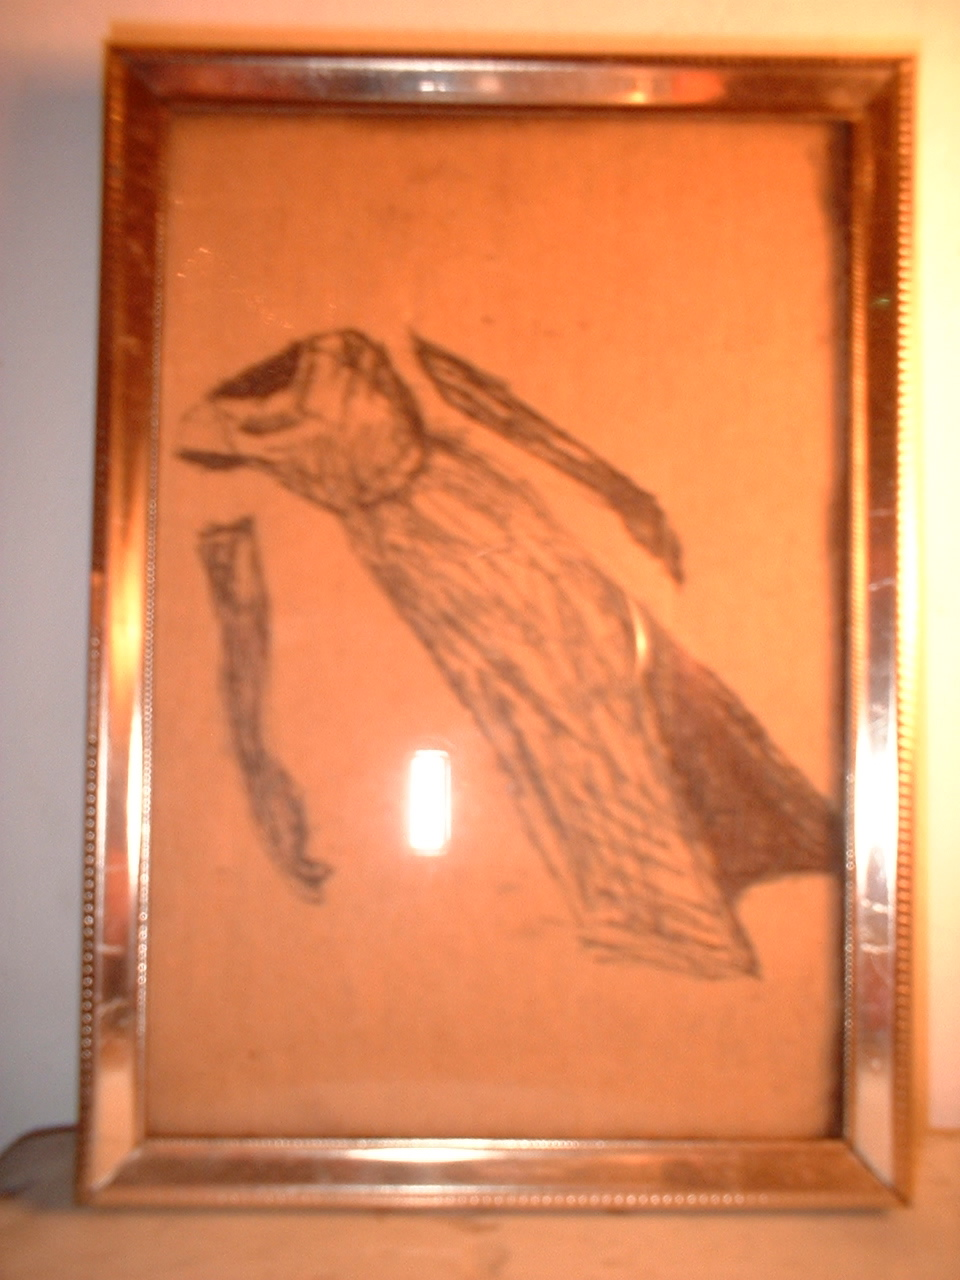 Prom Dress Drawing #8. 1995; ink on chipboard, metal frame